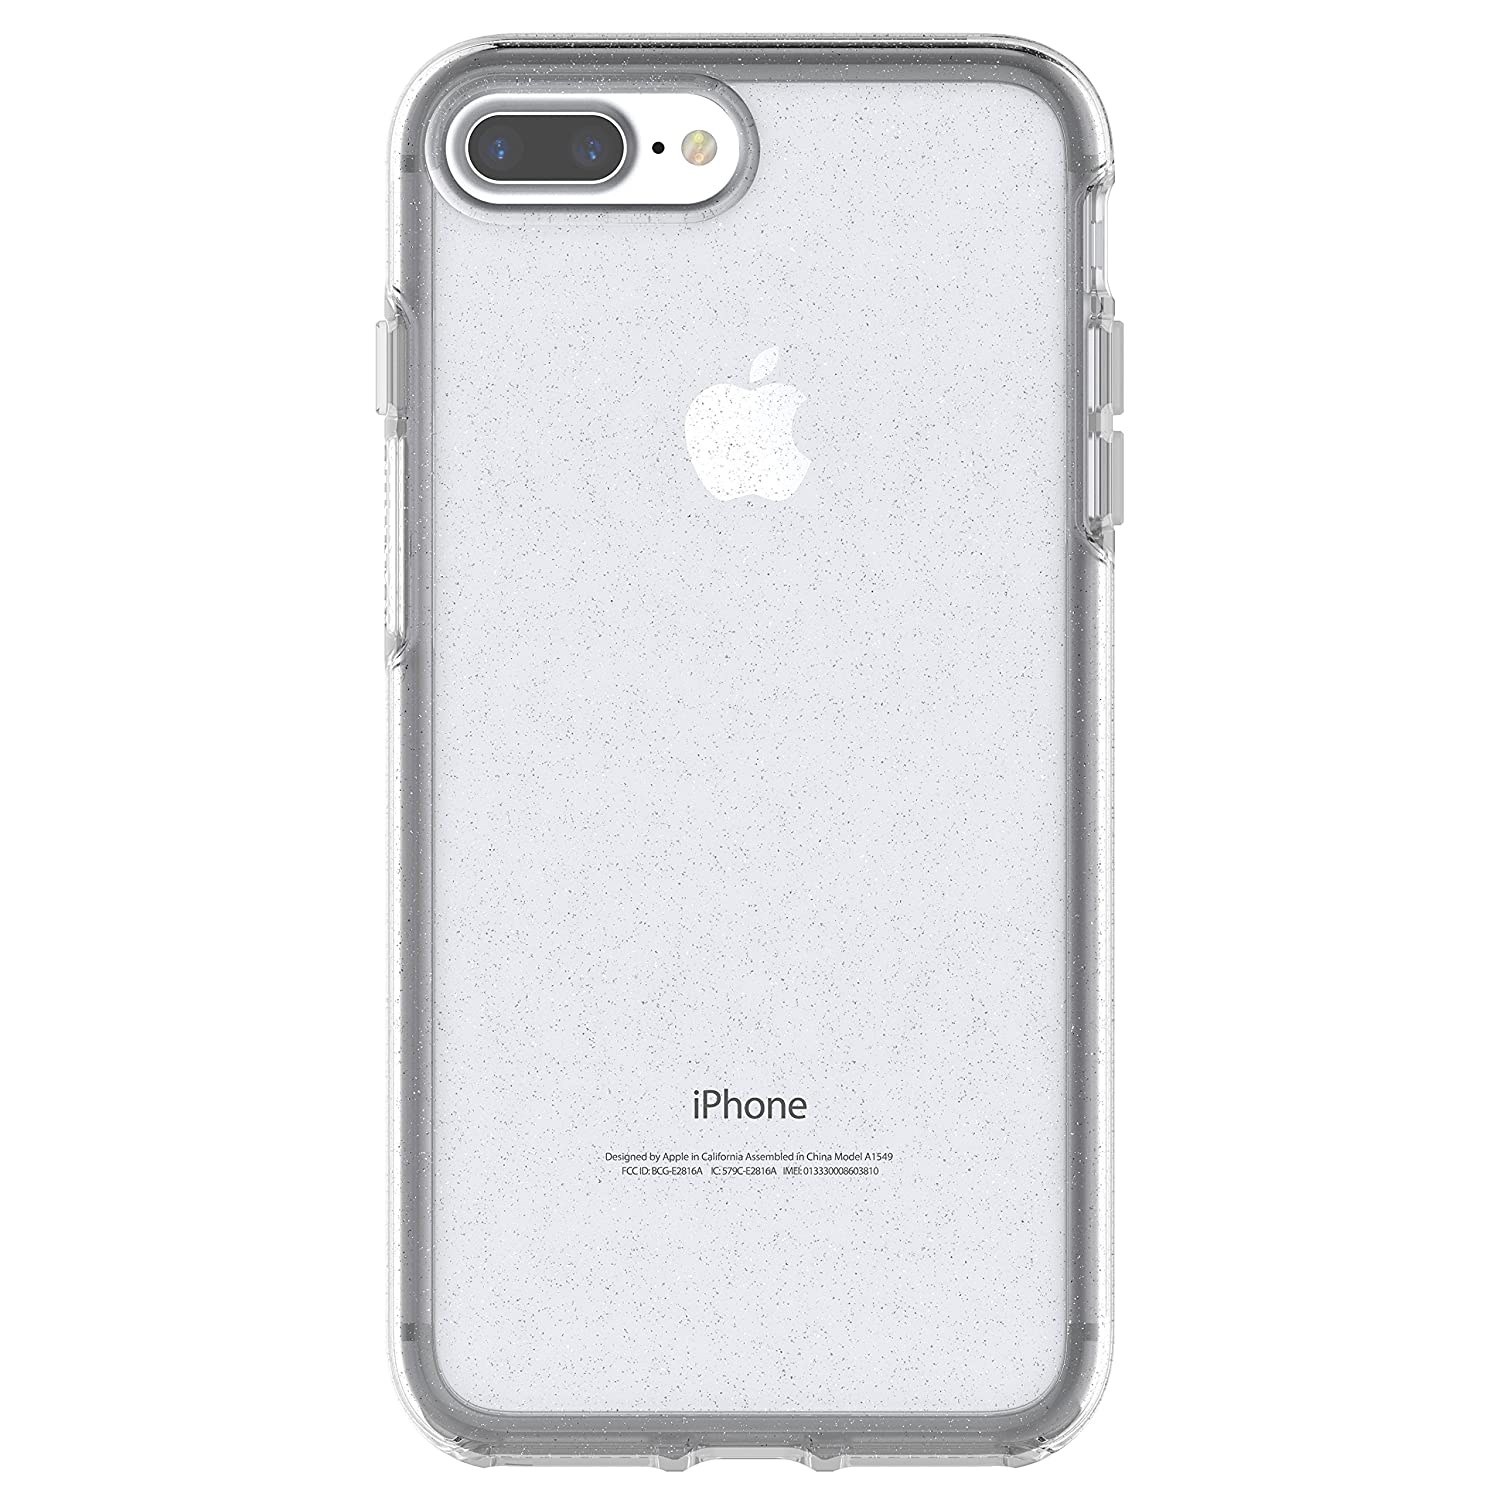 OtterBox SYMMETRY CLEAR SERIES Case foriPhone 8 Plus & iPhone 7 Plus (ONLY) - Retail Packaging - STARDUST (SILVER FLAKE/CLEAR)